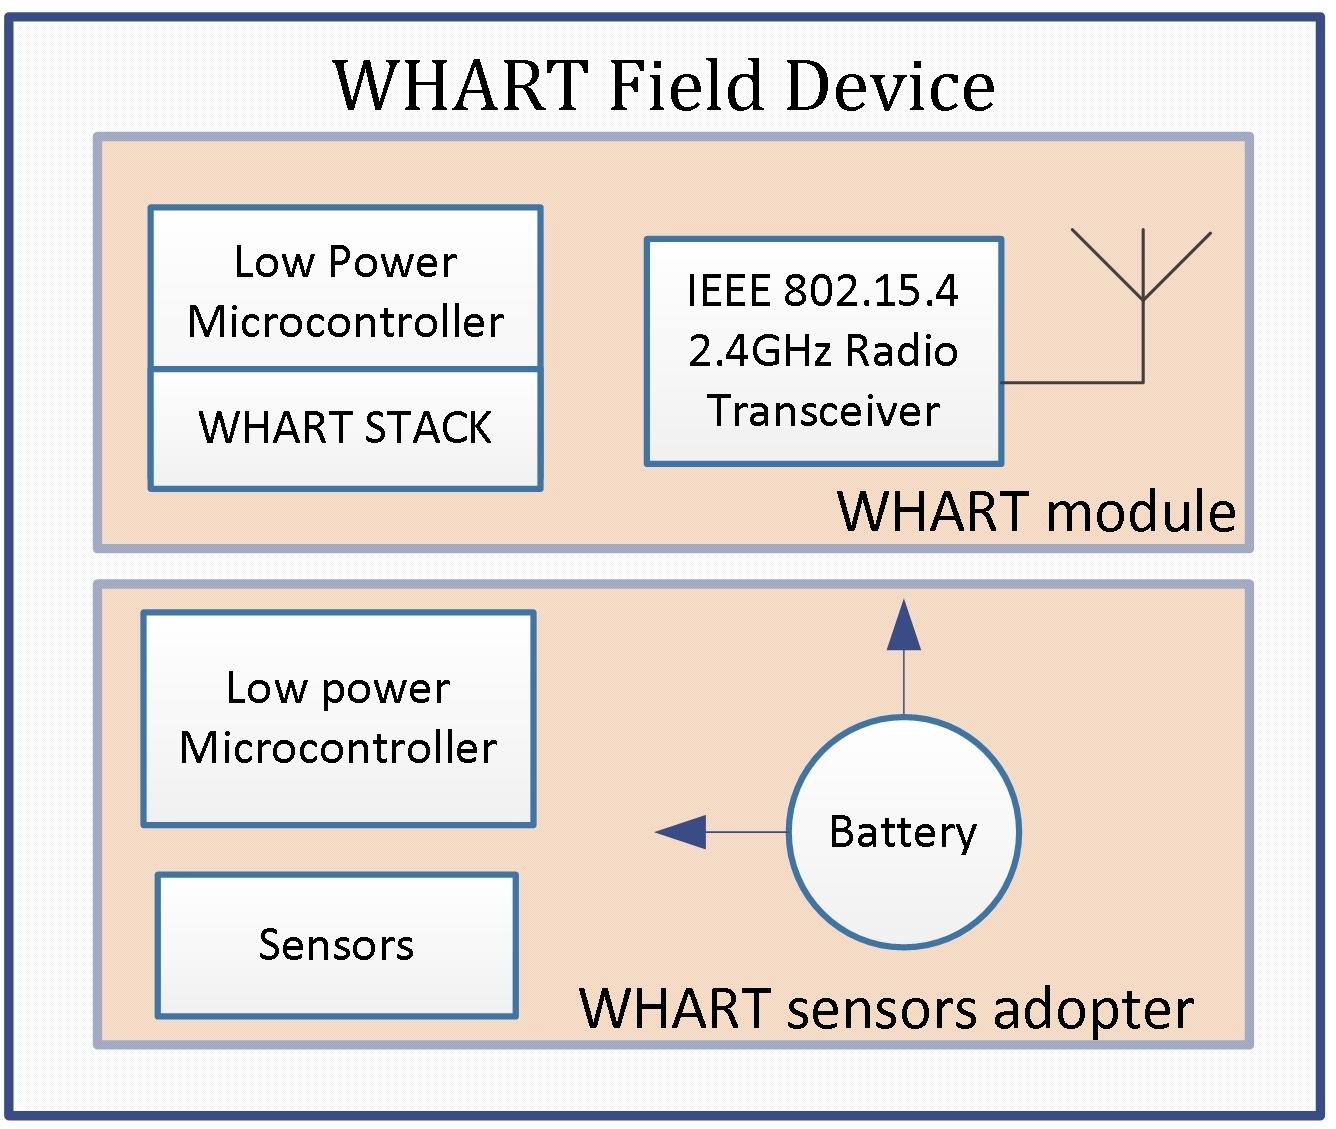 hight resolution of block diagram hart device wiring diagrams bibdesign of field device and network manager using whart for